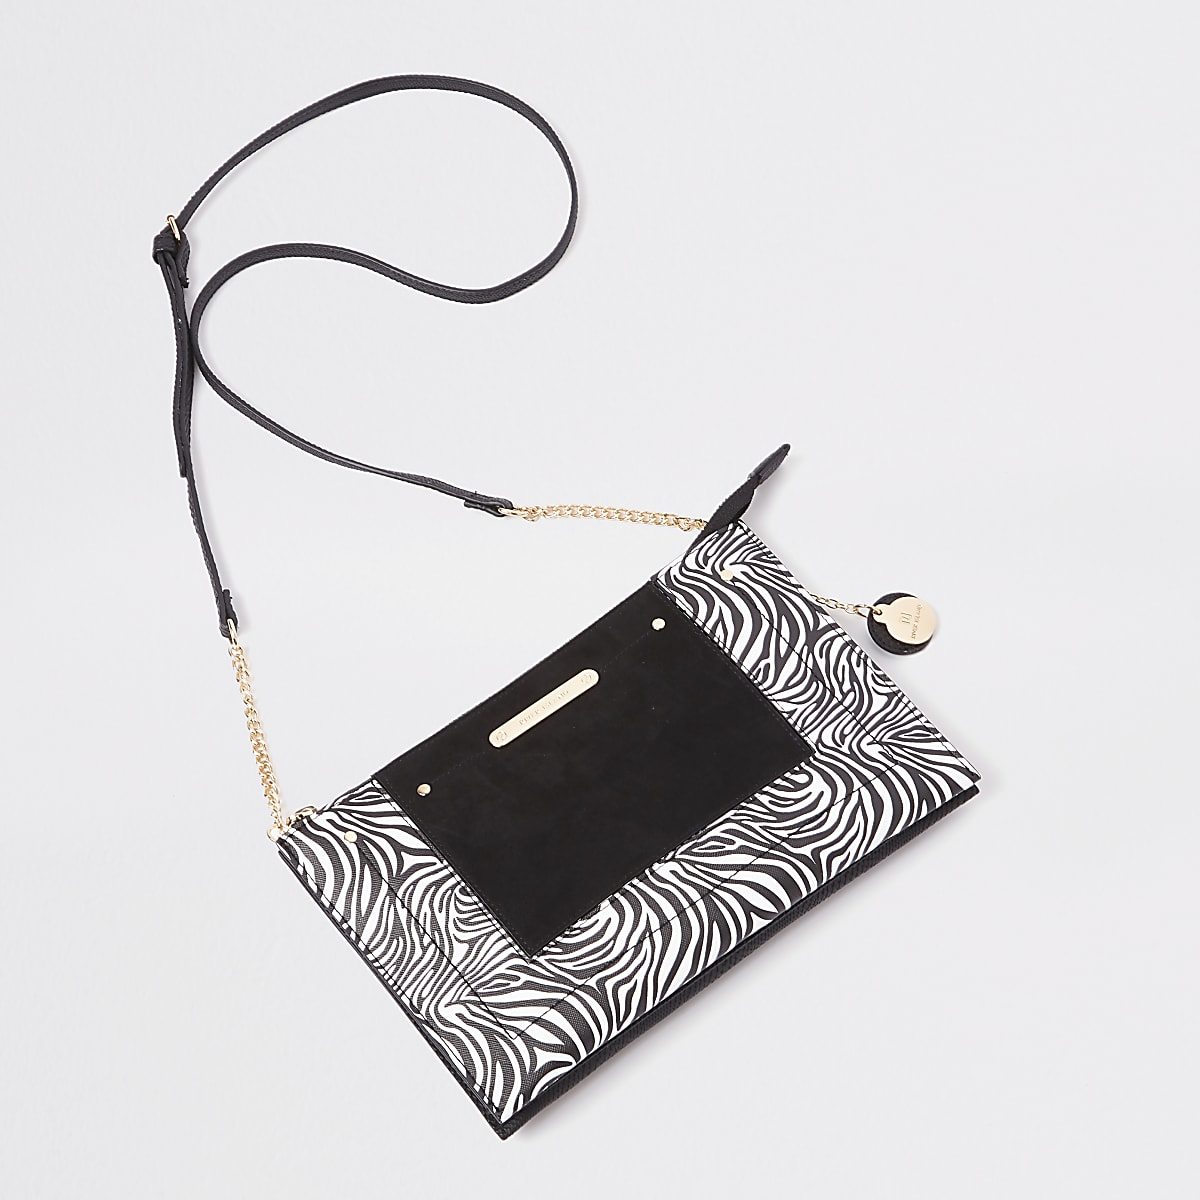 Black zebra print cross body pouch bag